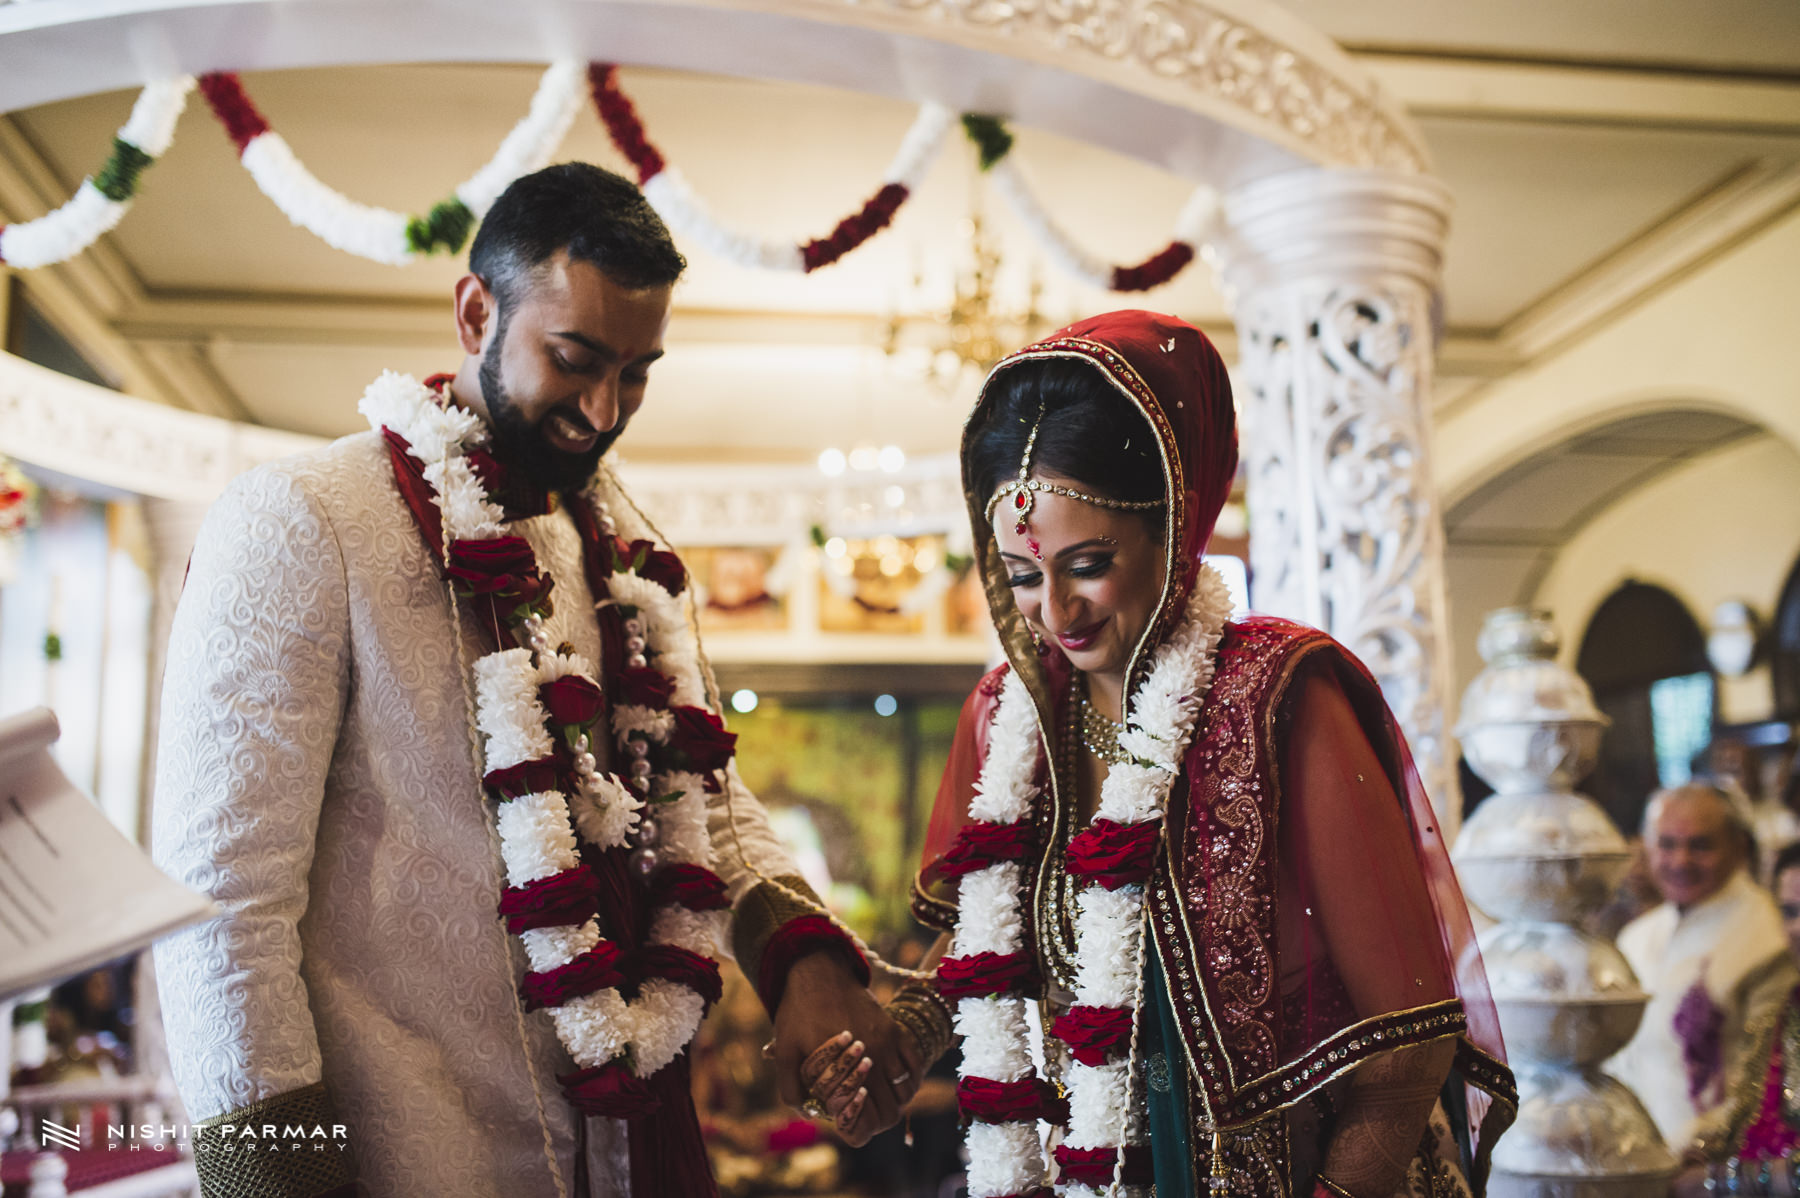 Seven Step of Indian Bride and Groom